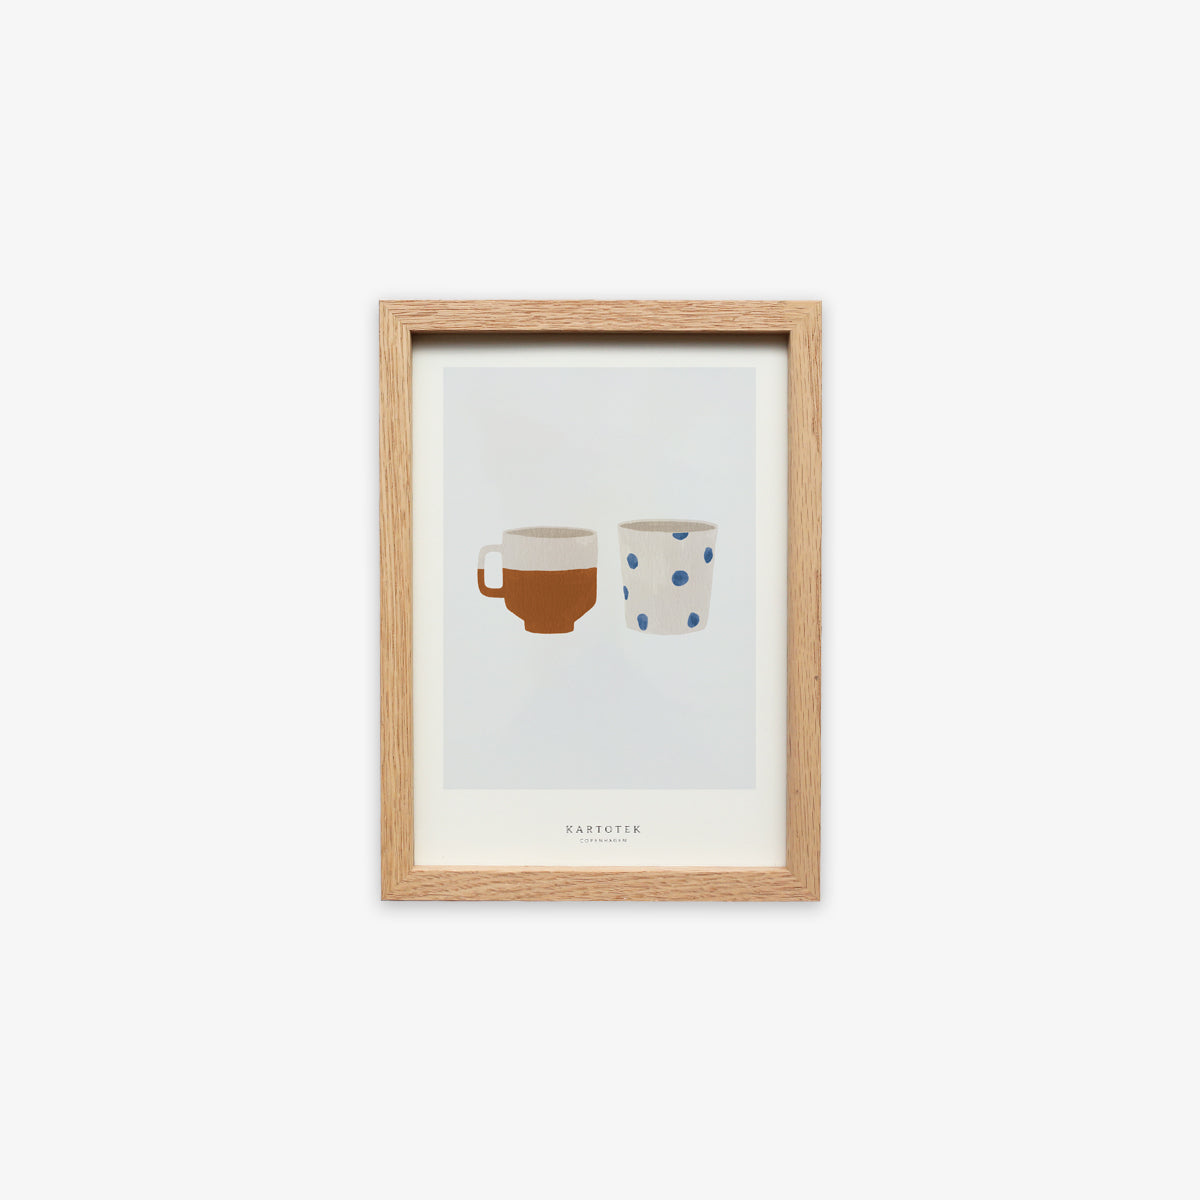 OAK WOOD FRAME + CARD A5 // TWO CUPS